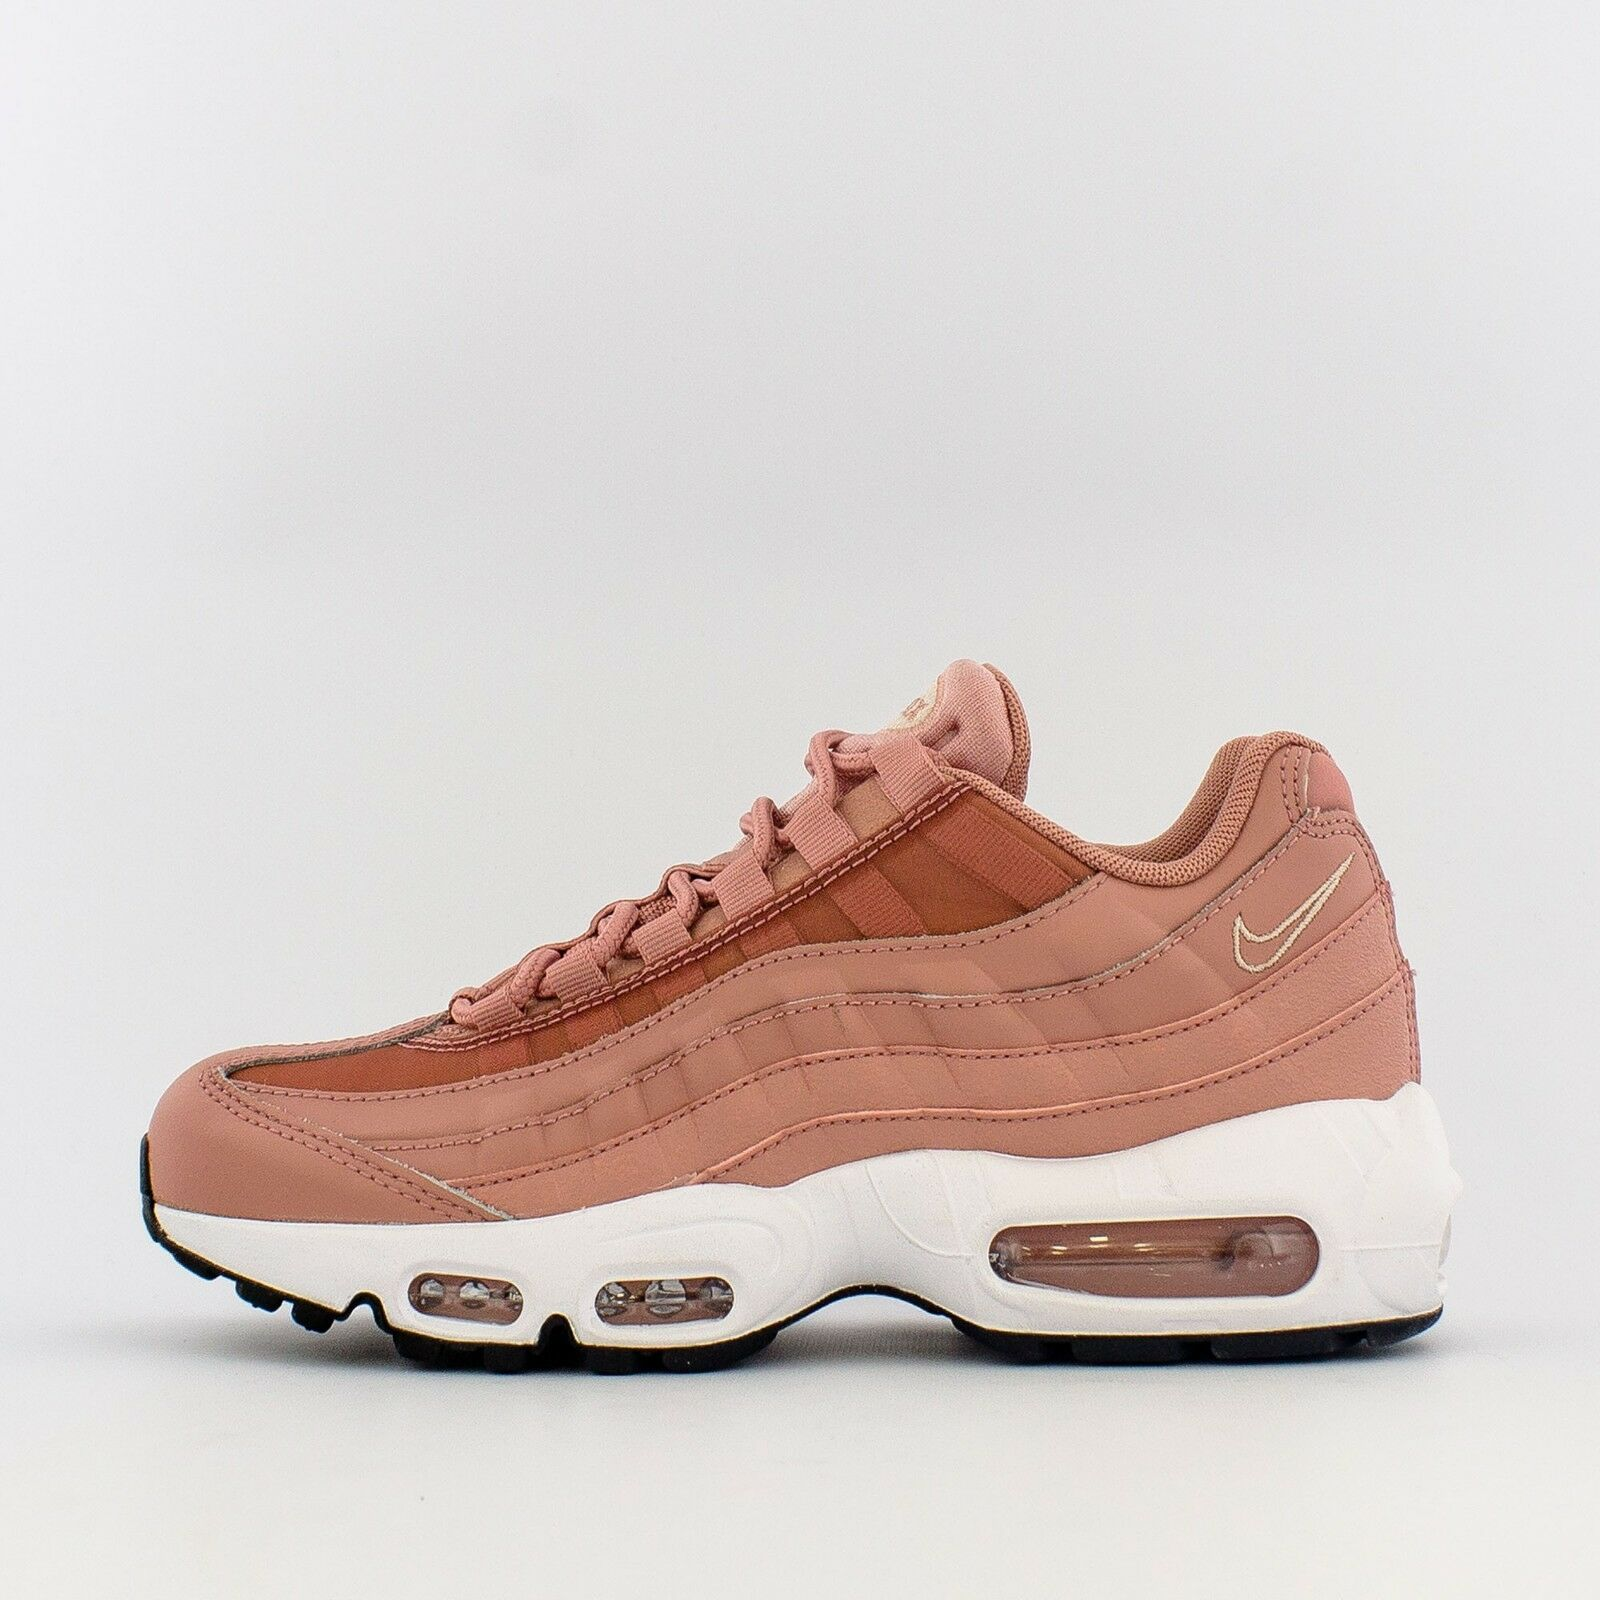 WMNS 2018 Nike Air Max 95 SZ 6.5 Rust Pink Particle Beige Black 307960-606